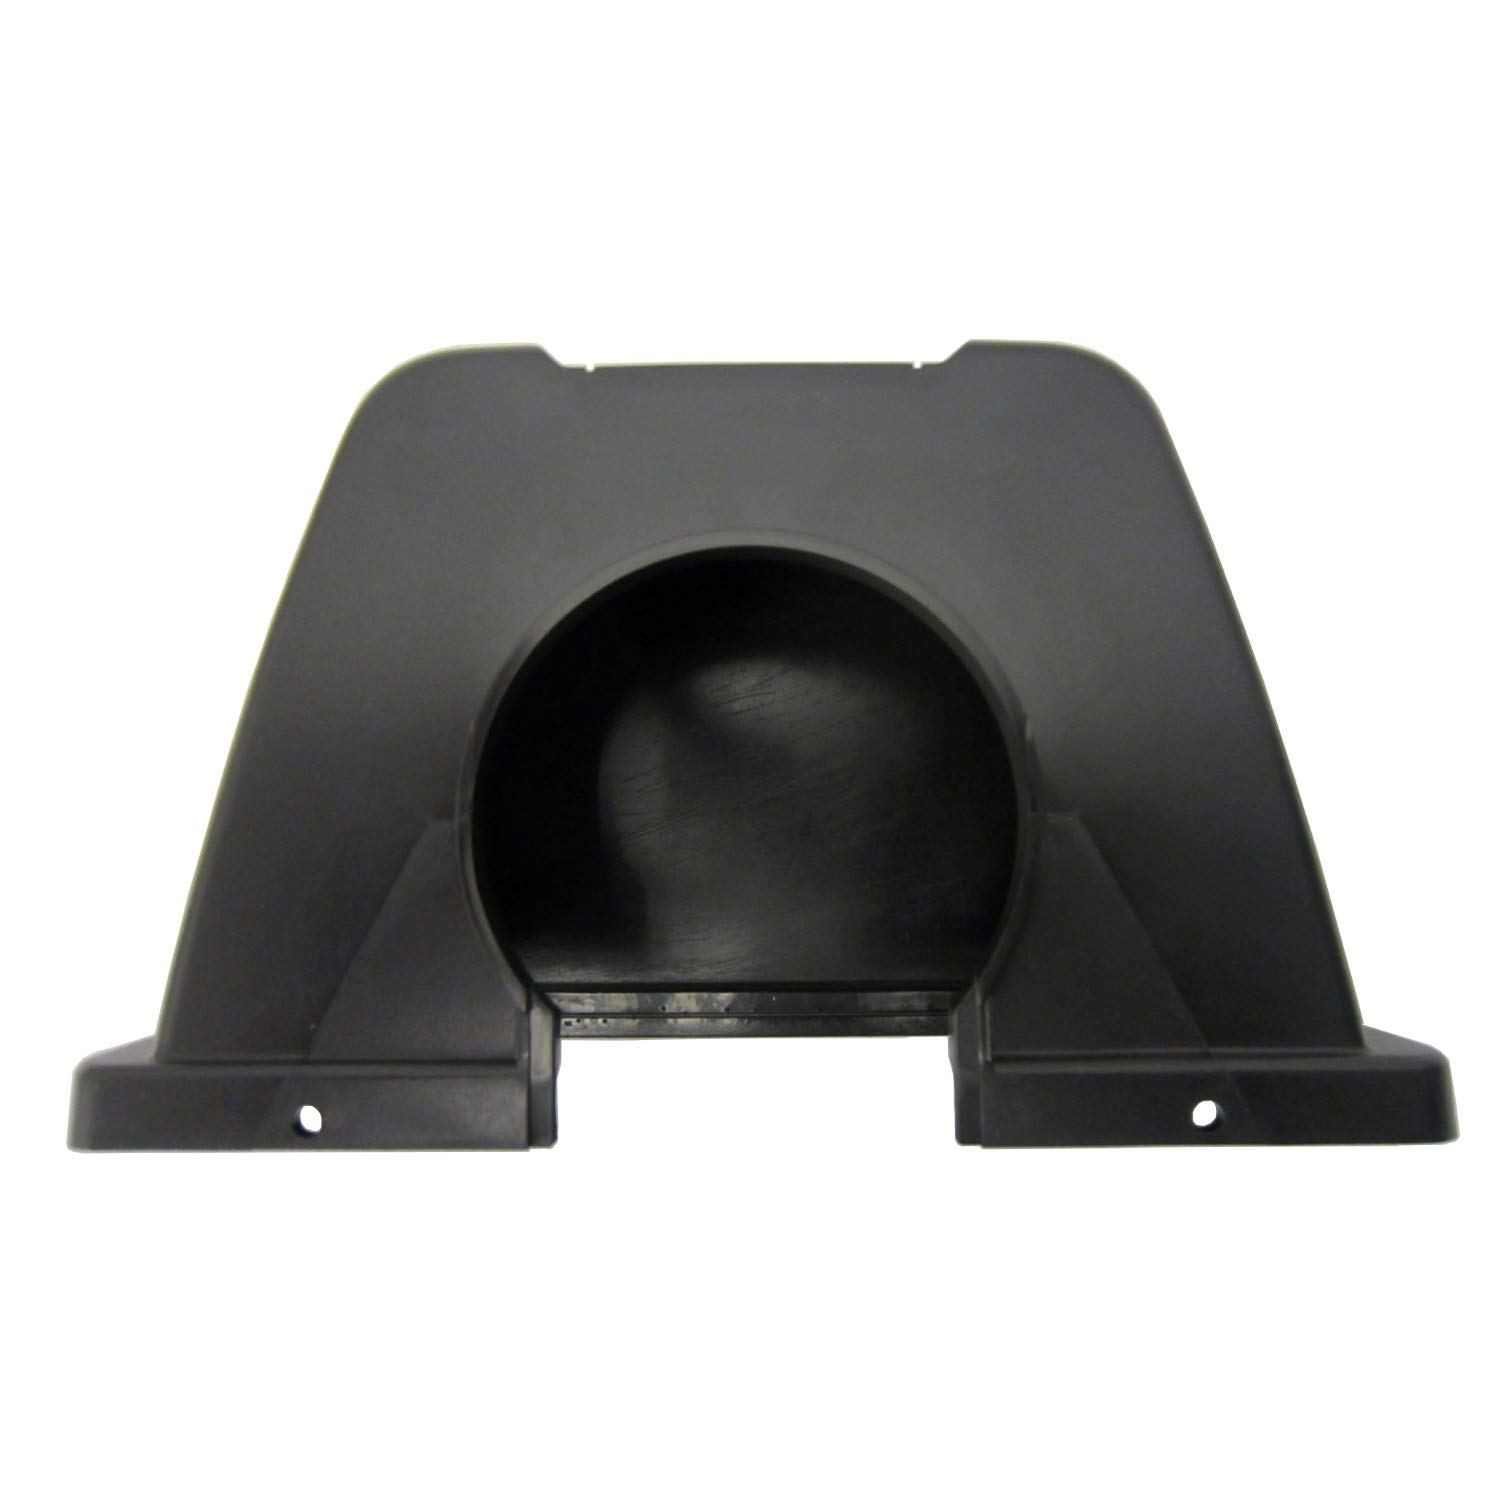 Yamaha Outboard OEM Top Console Mount Binnacle Control Cover 704-48119-00-00 by Yamaha